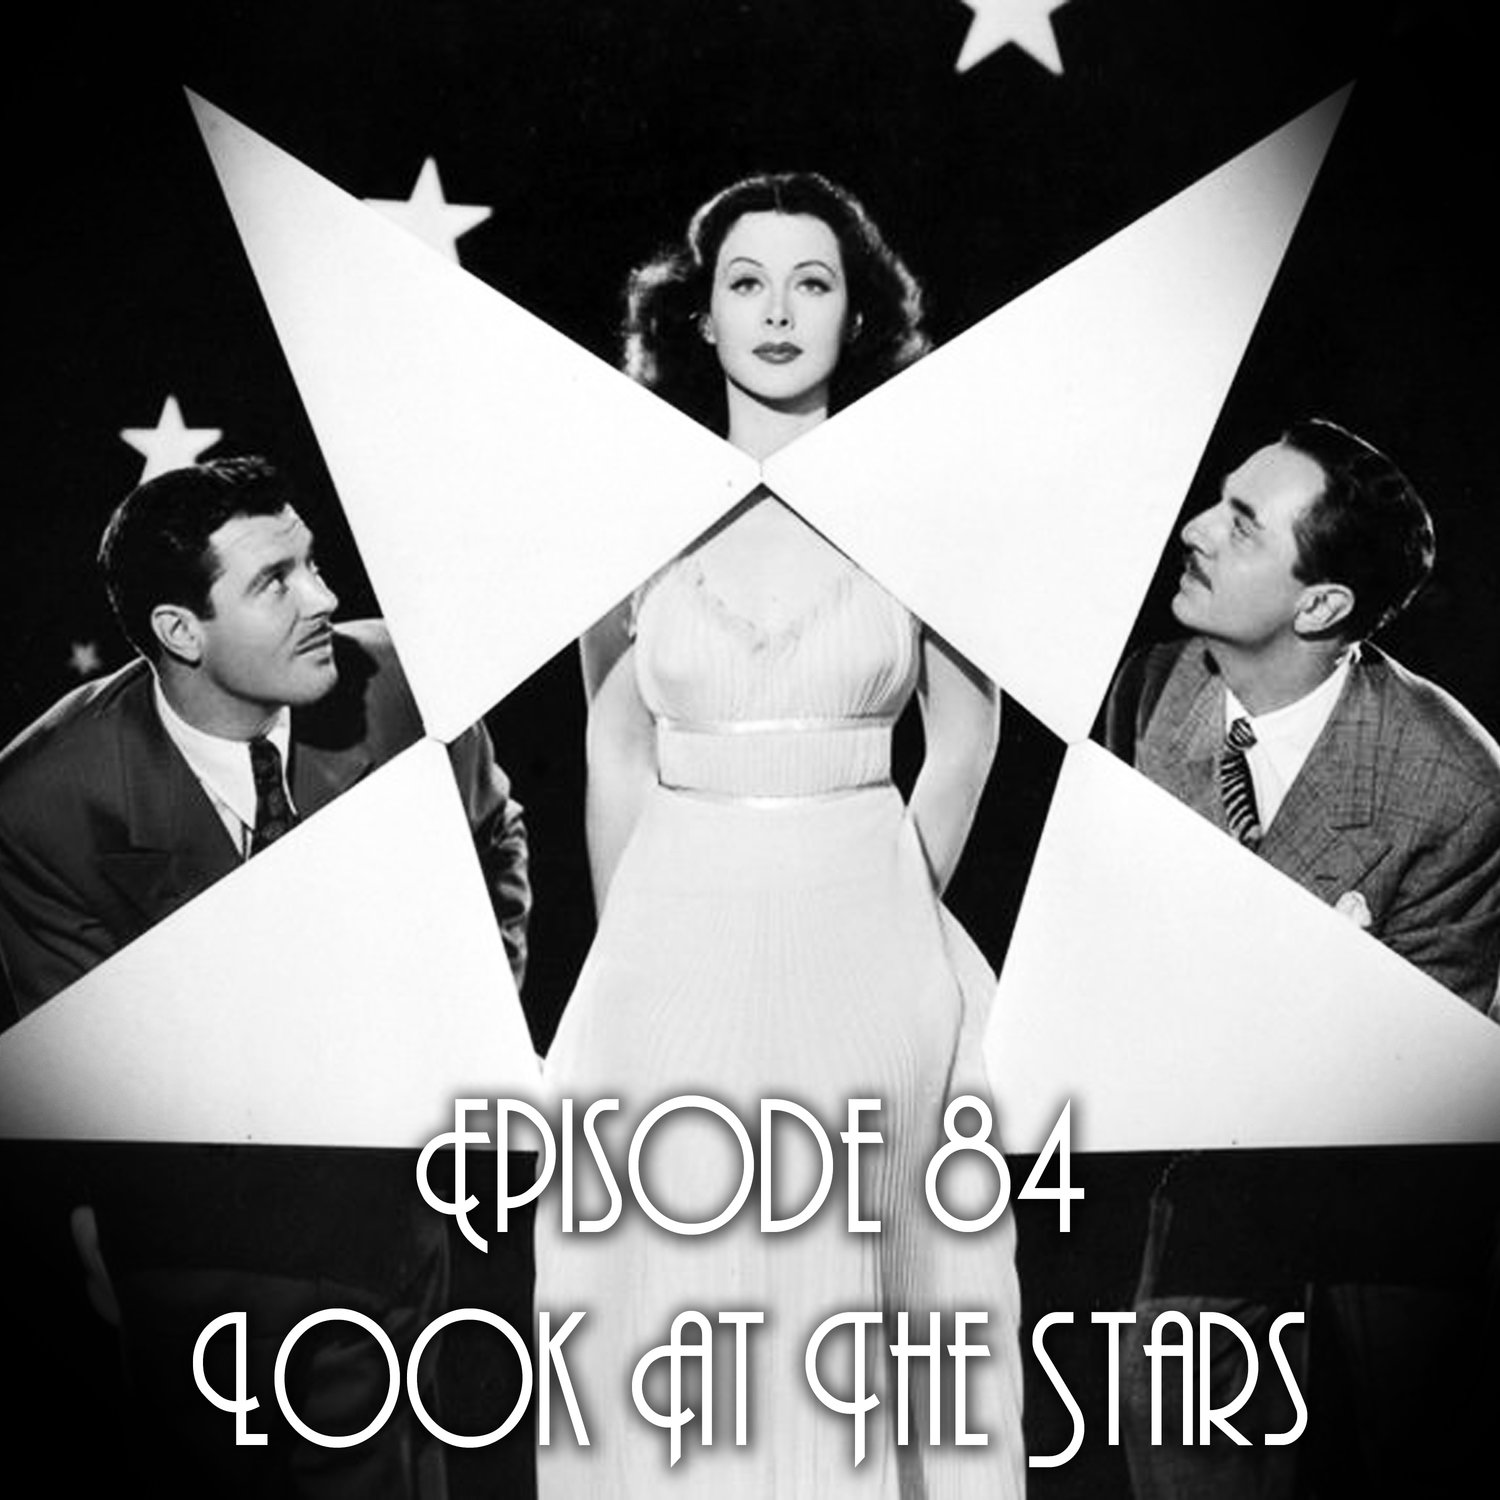 Episode 84: Look At The Stars